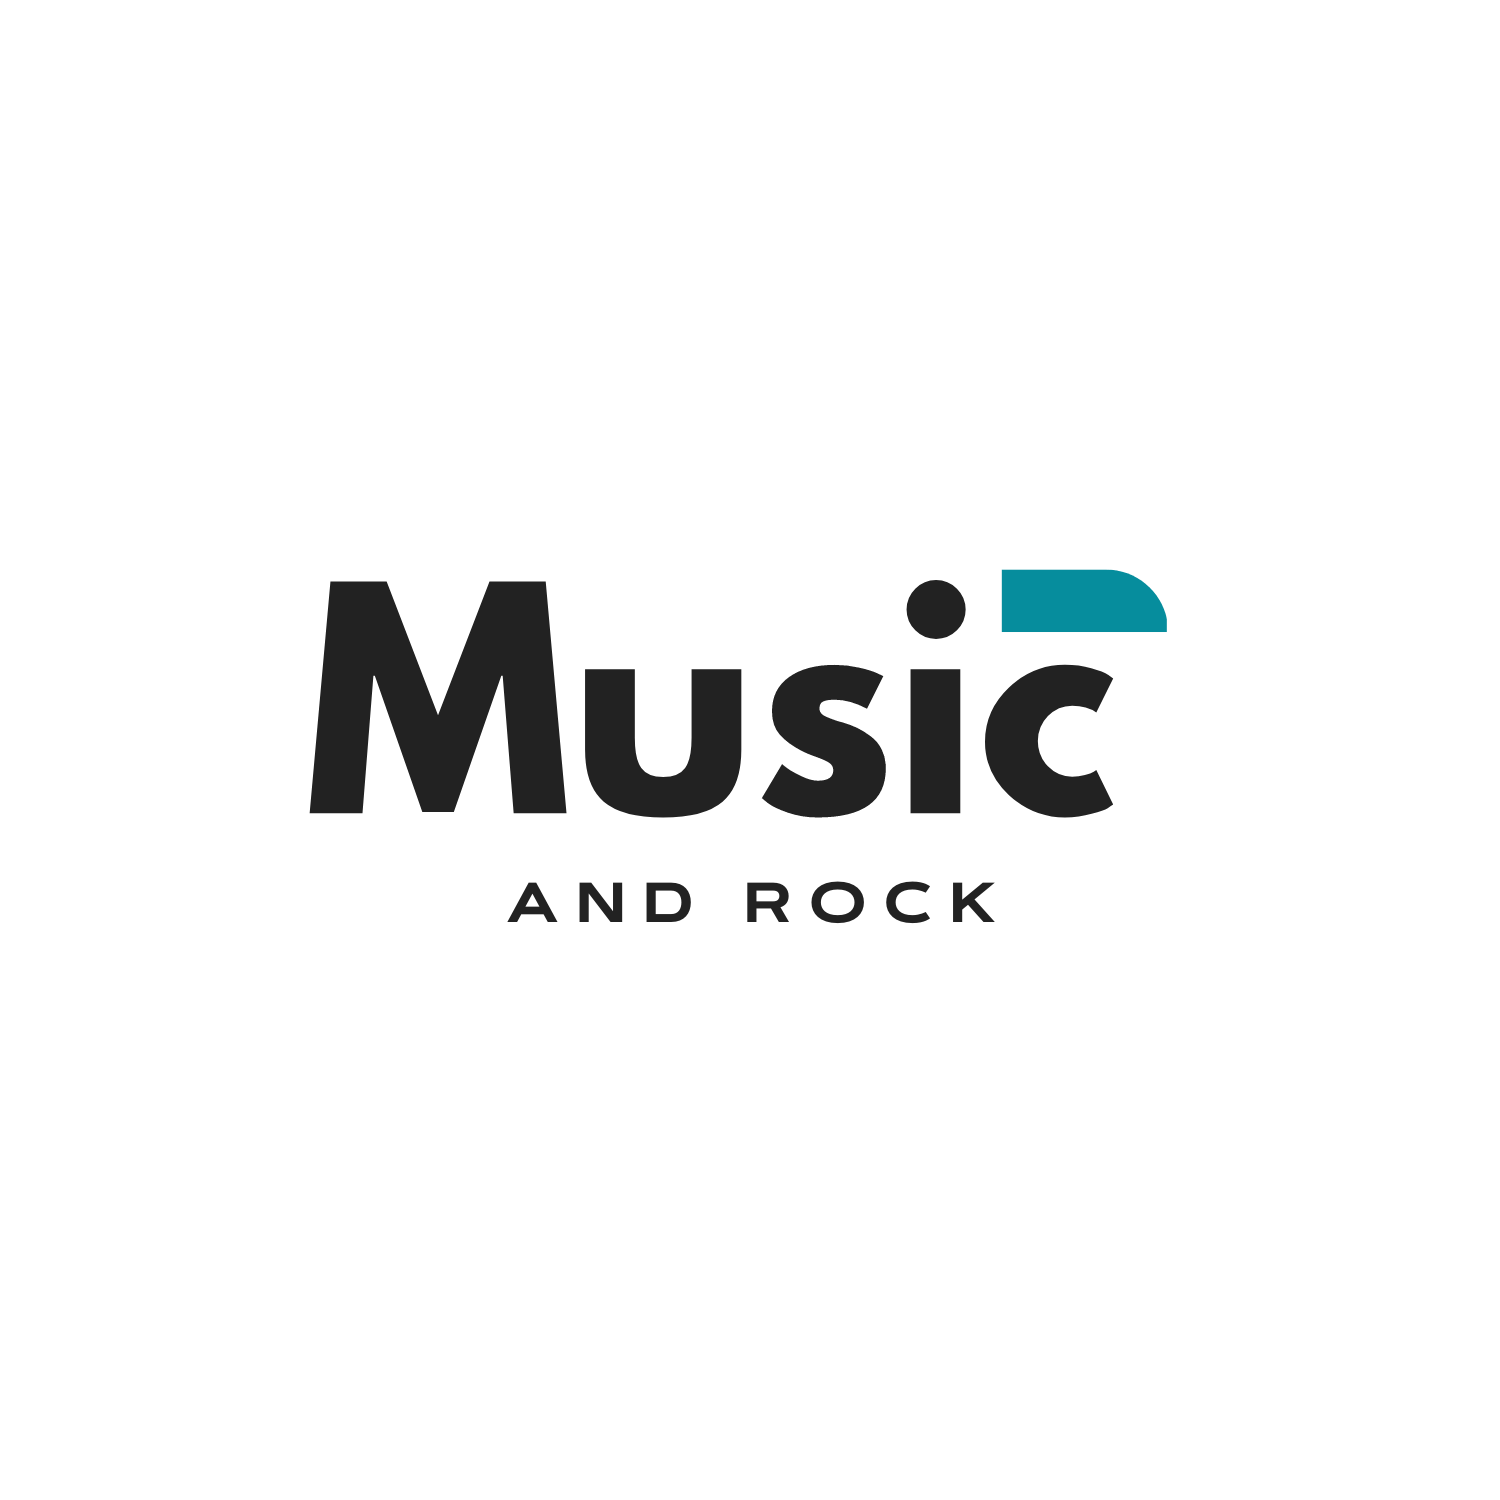 Logotipo Music and Rock v2